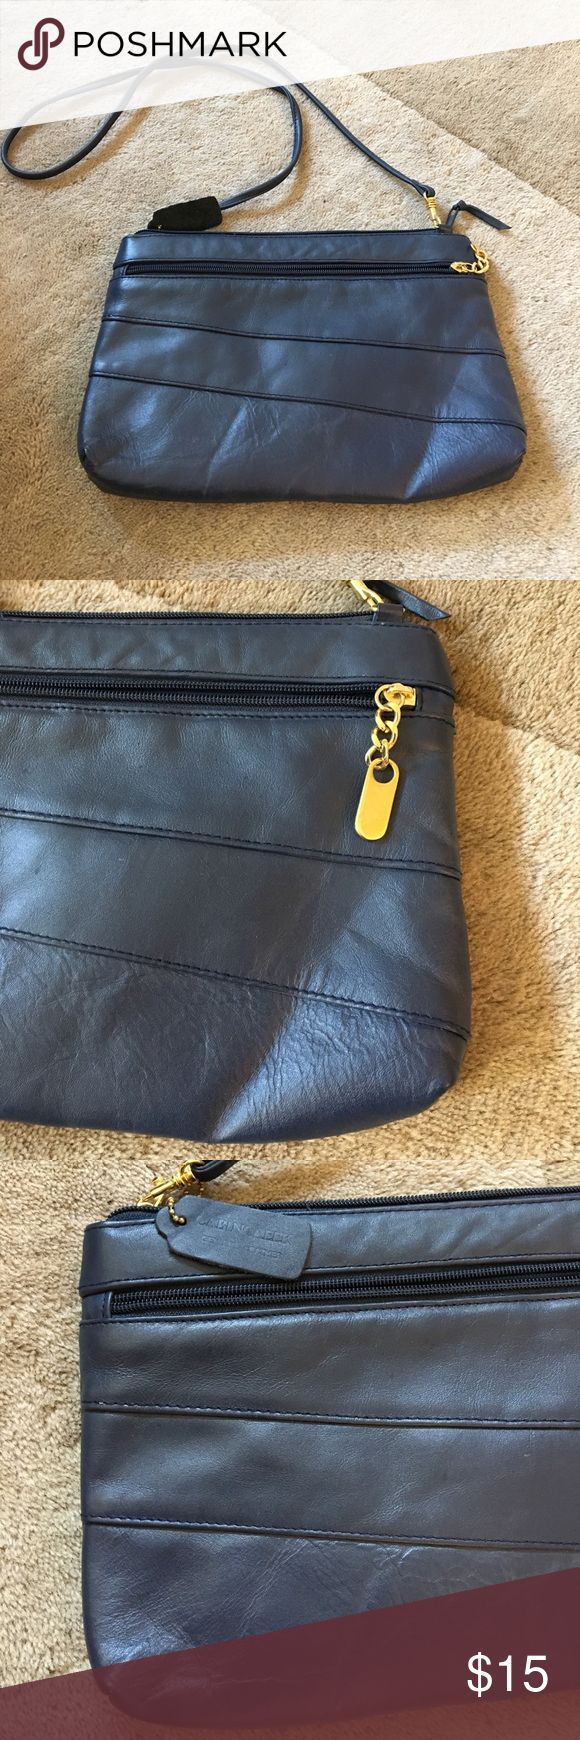 Cabin Creek leather Navy clutch Navy blue clutch, comes with cross body strap. Has zip pockets on front, back, & inside of purse. In good condition! 11 in x 7.5 inches. Genuine Leather. Cabin Creek Bags Clutches & Wristlets